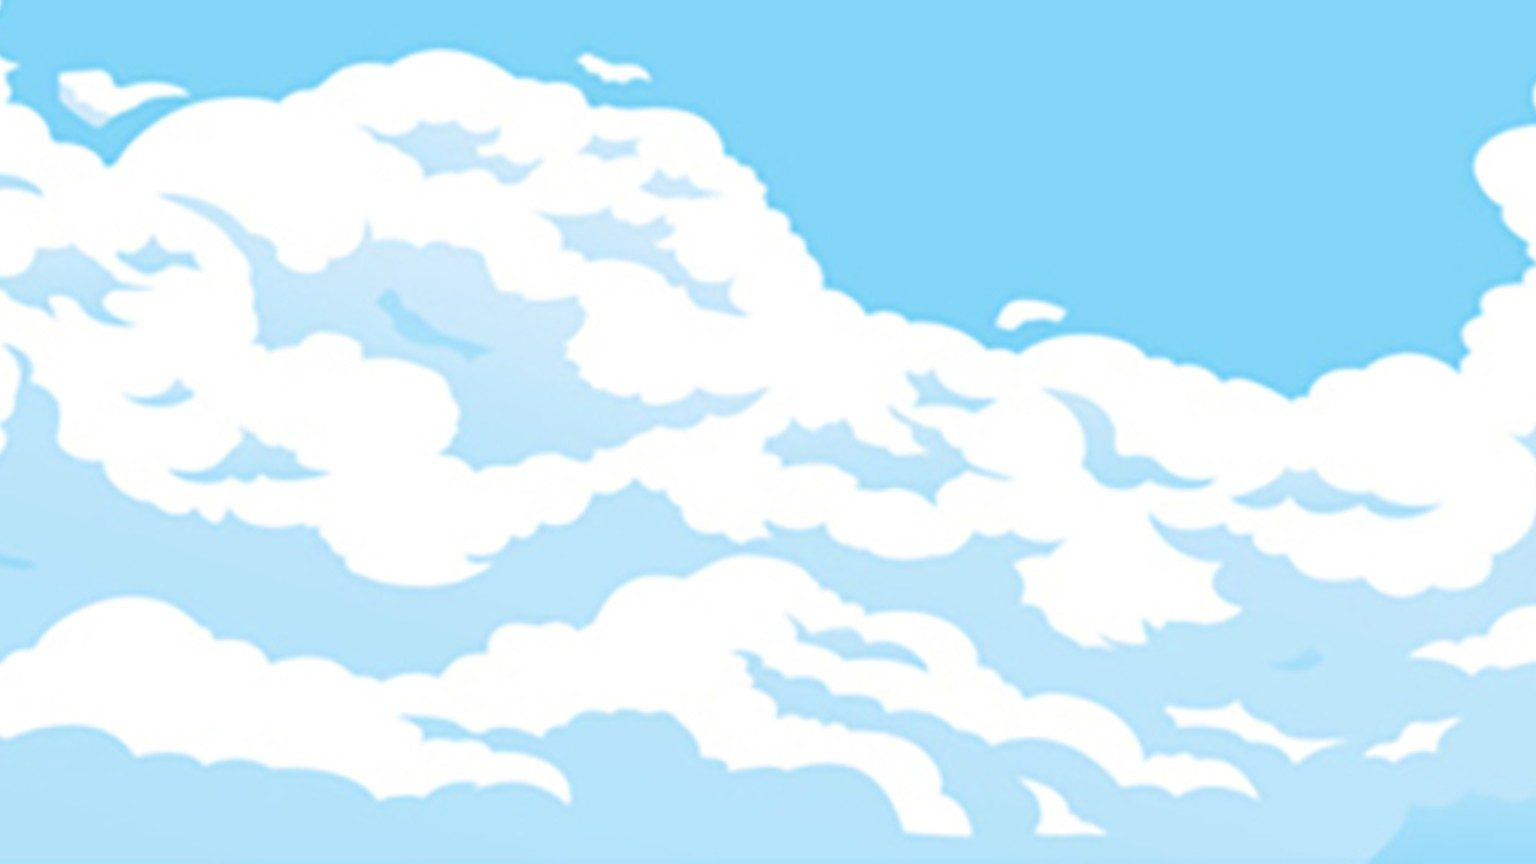 Comic clouds